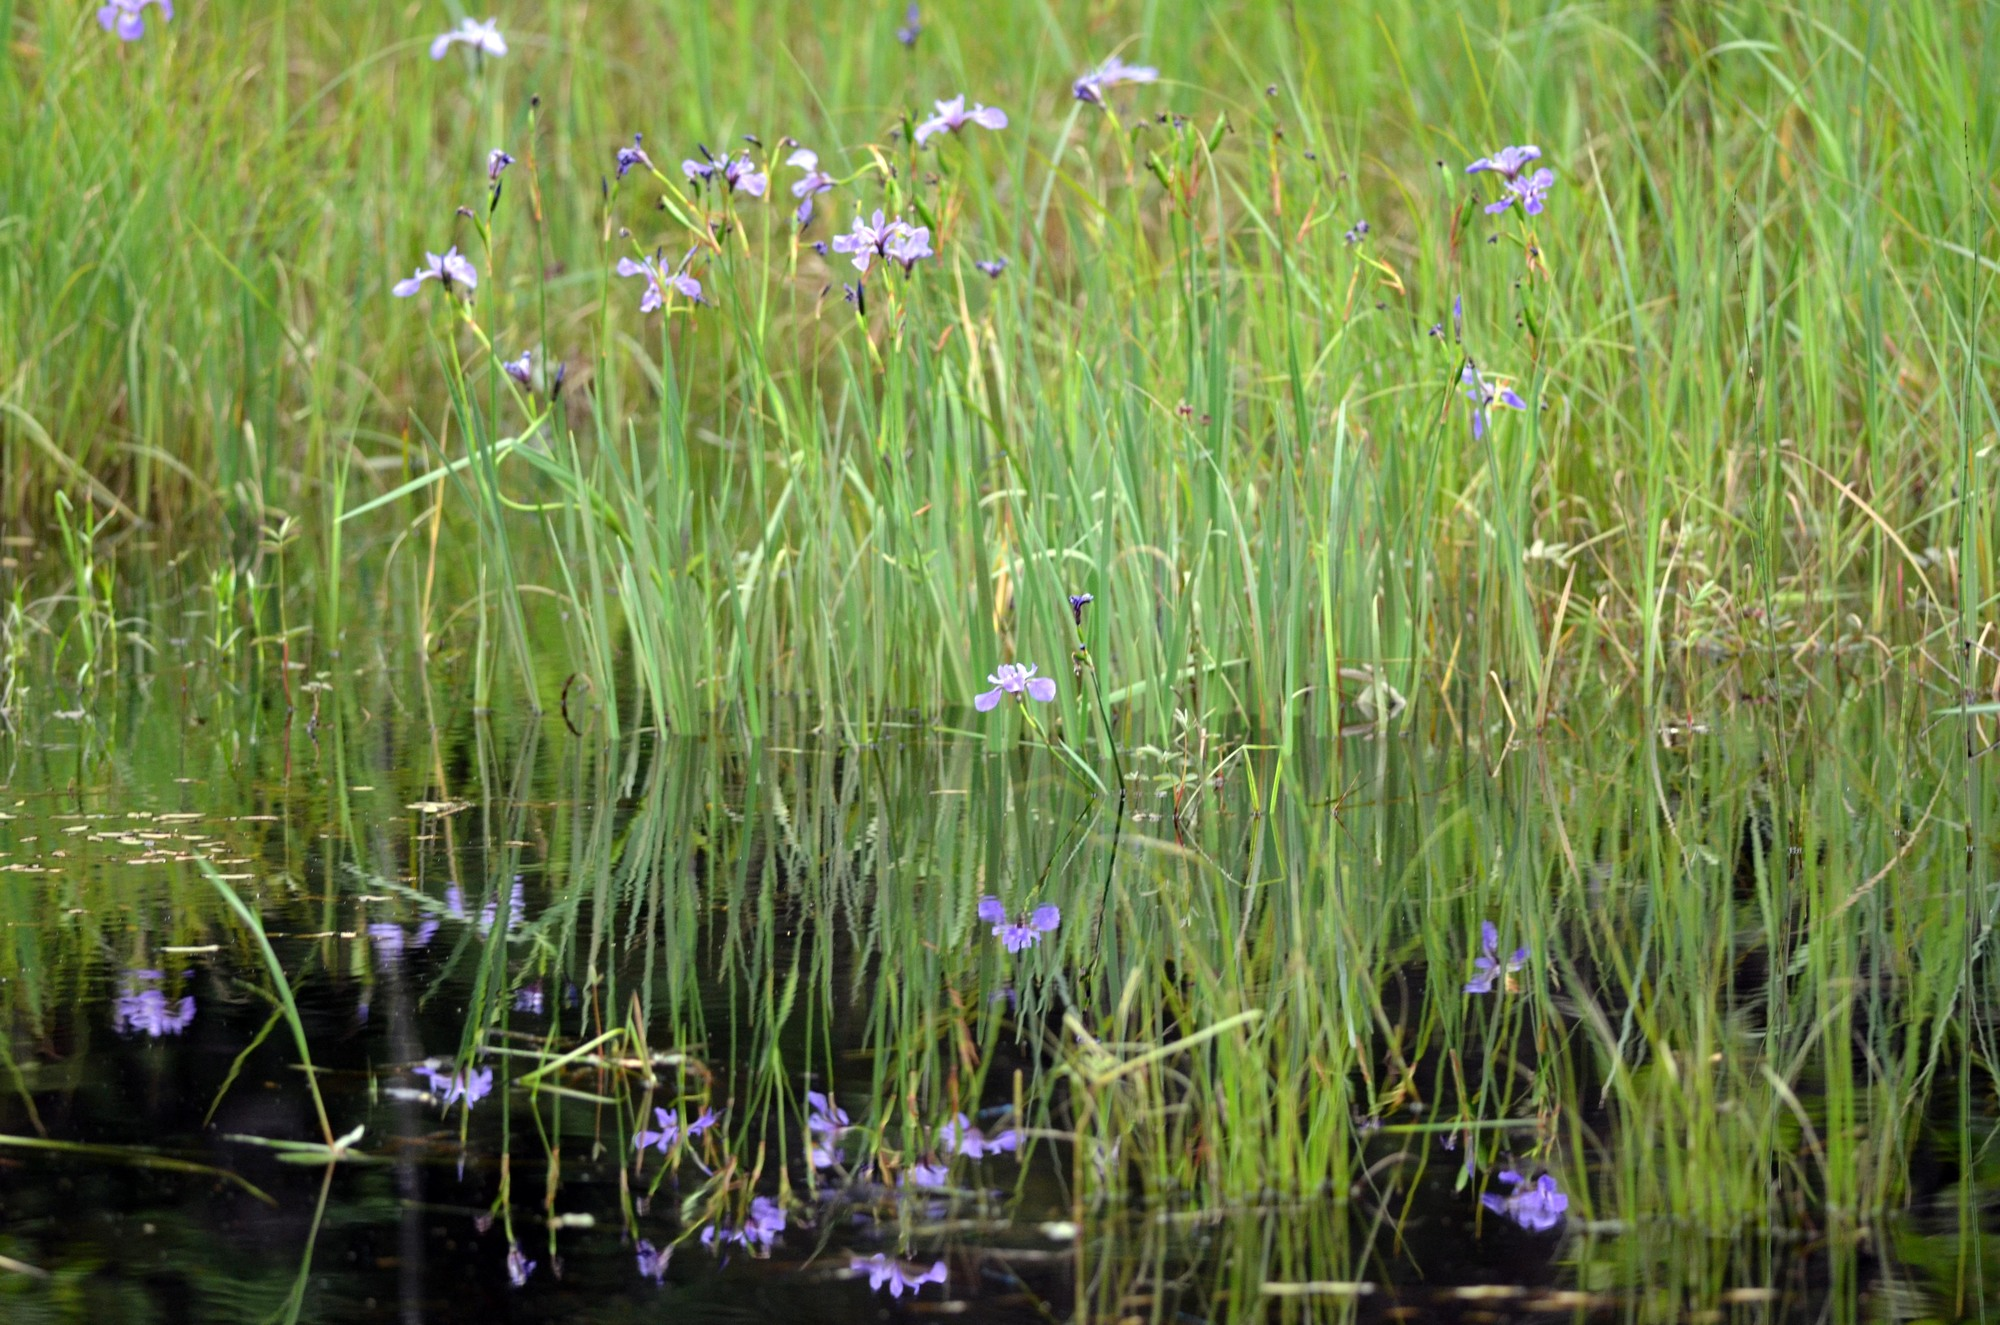 Wild irises are one of many Michigan wetland plant species.